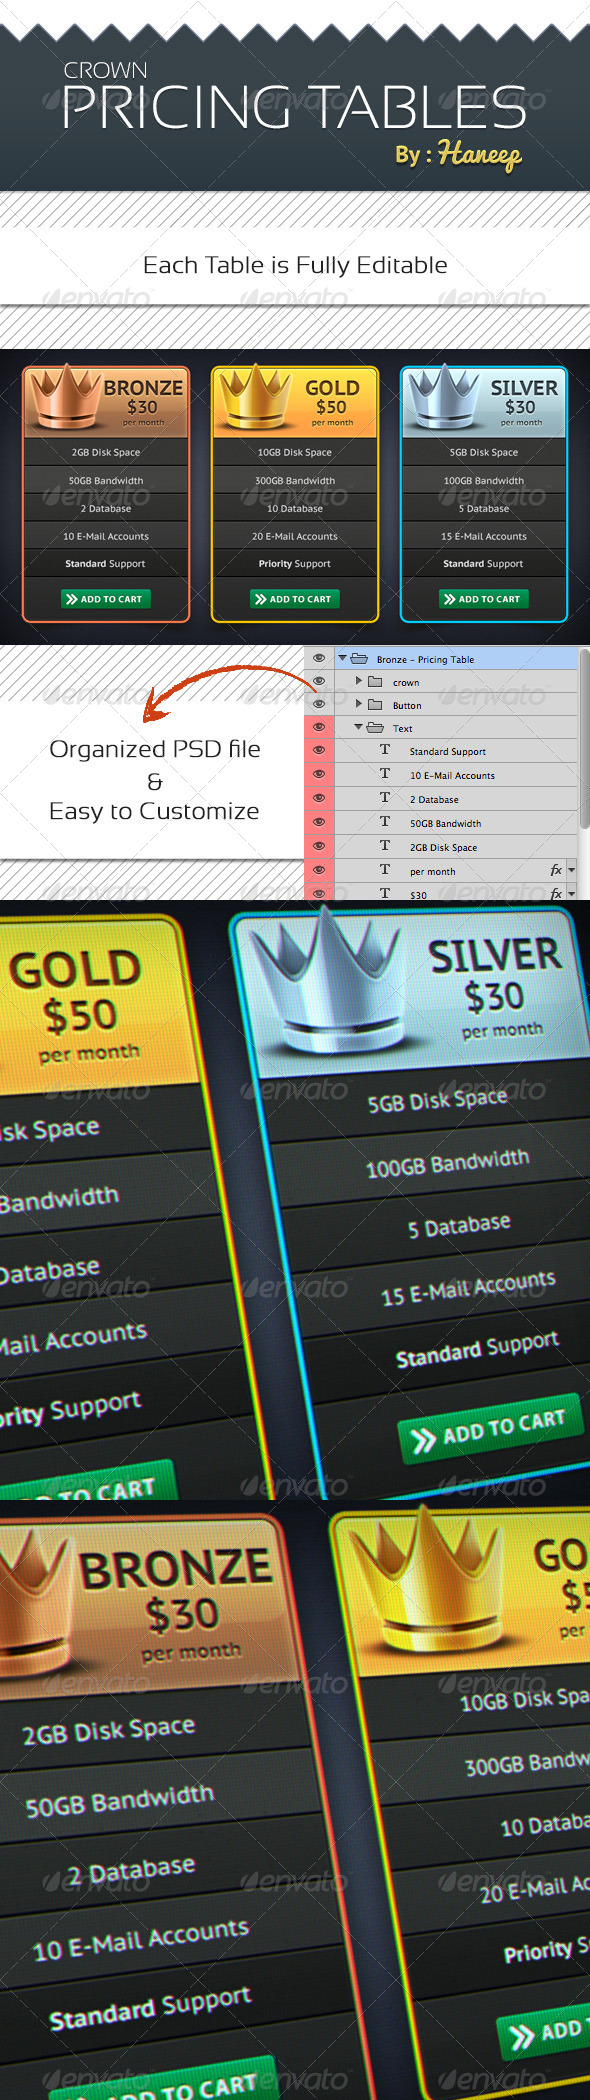 GraphicRiver Crown Pricing Tables 6306259